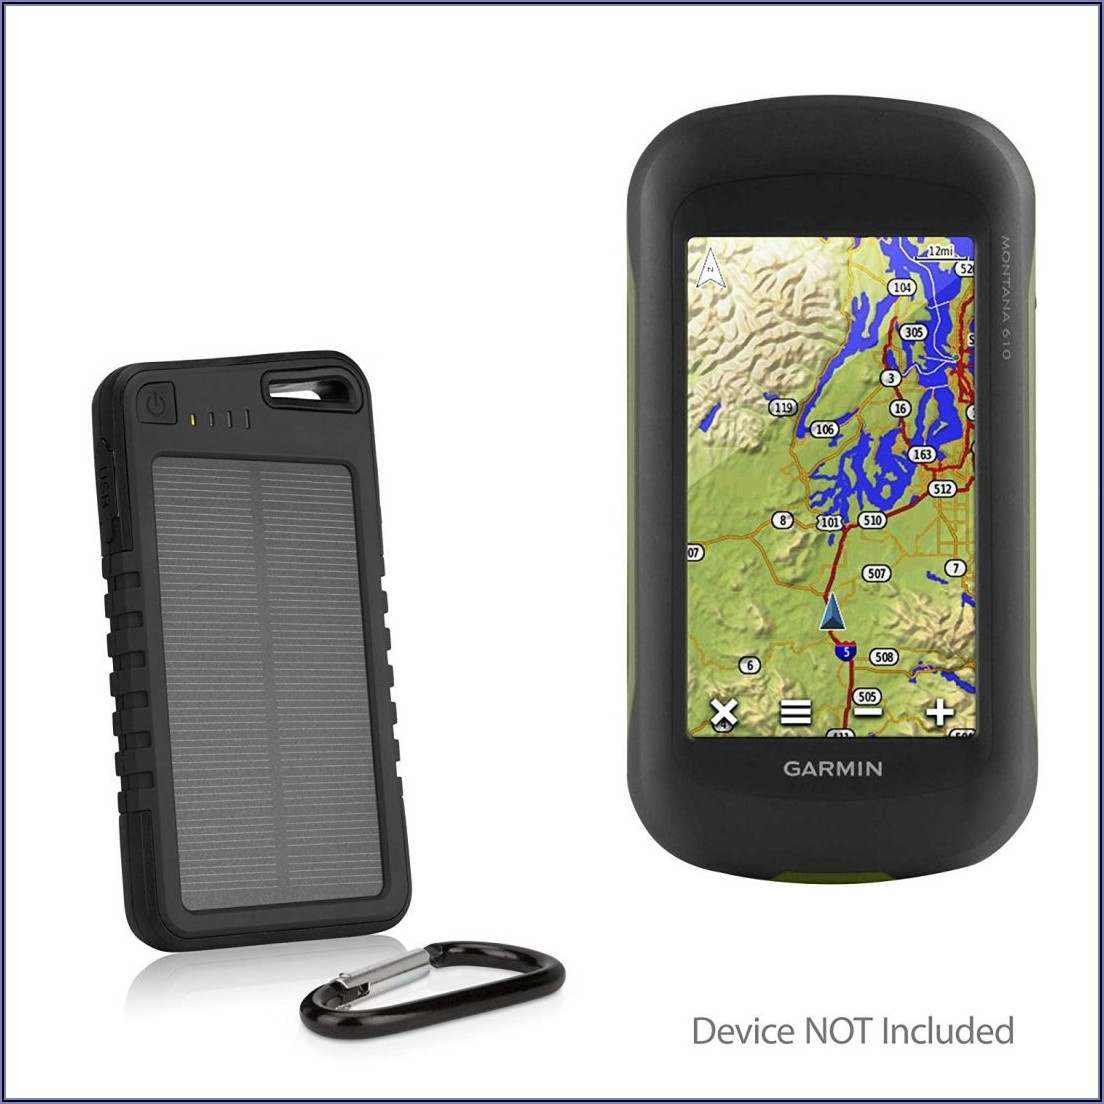 Handheld Gps Maps For Sale